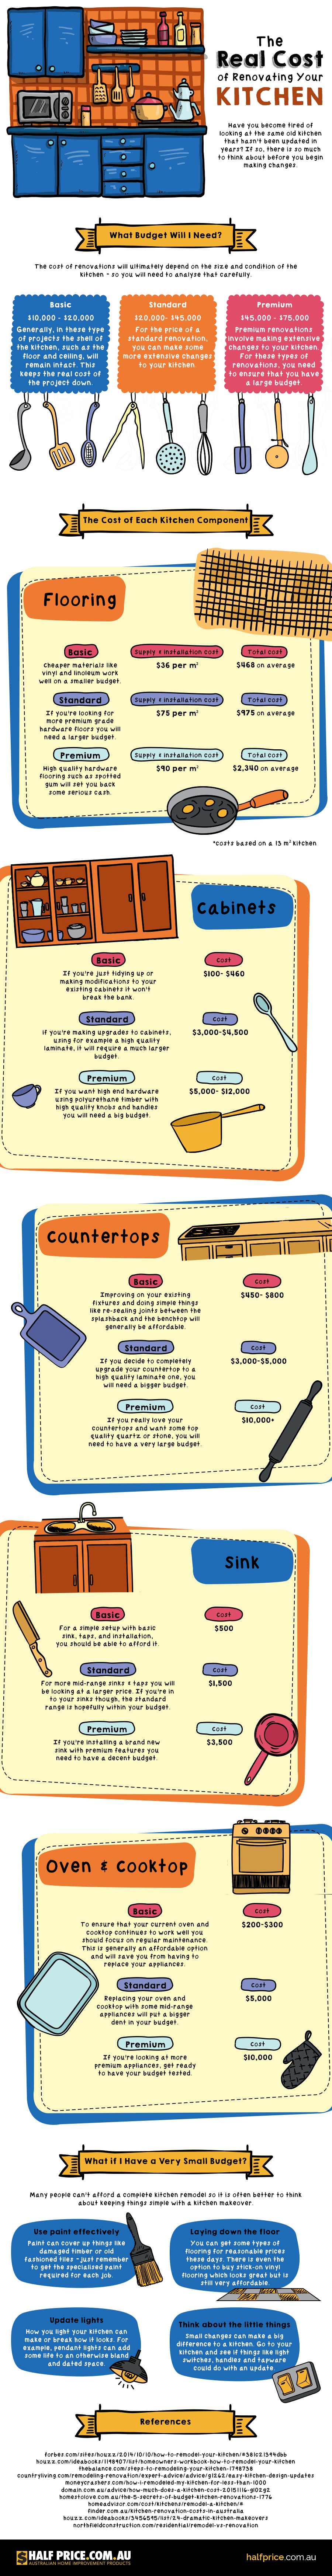 the-real-cost-of-kitchen-renovations